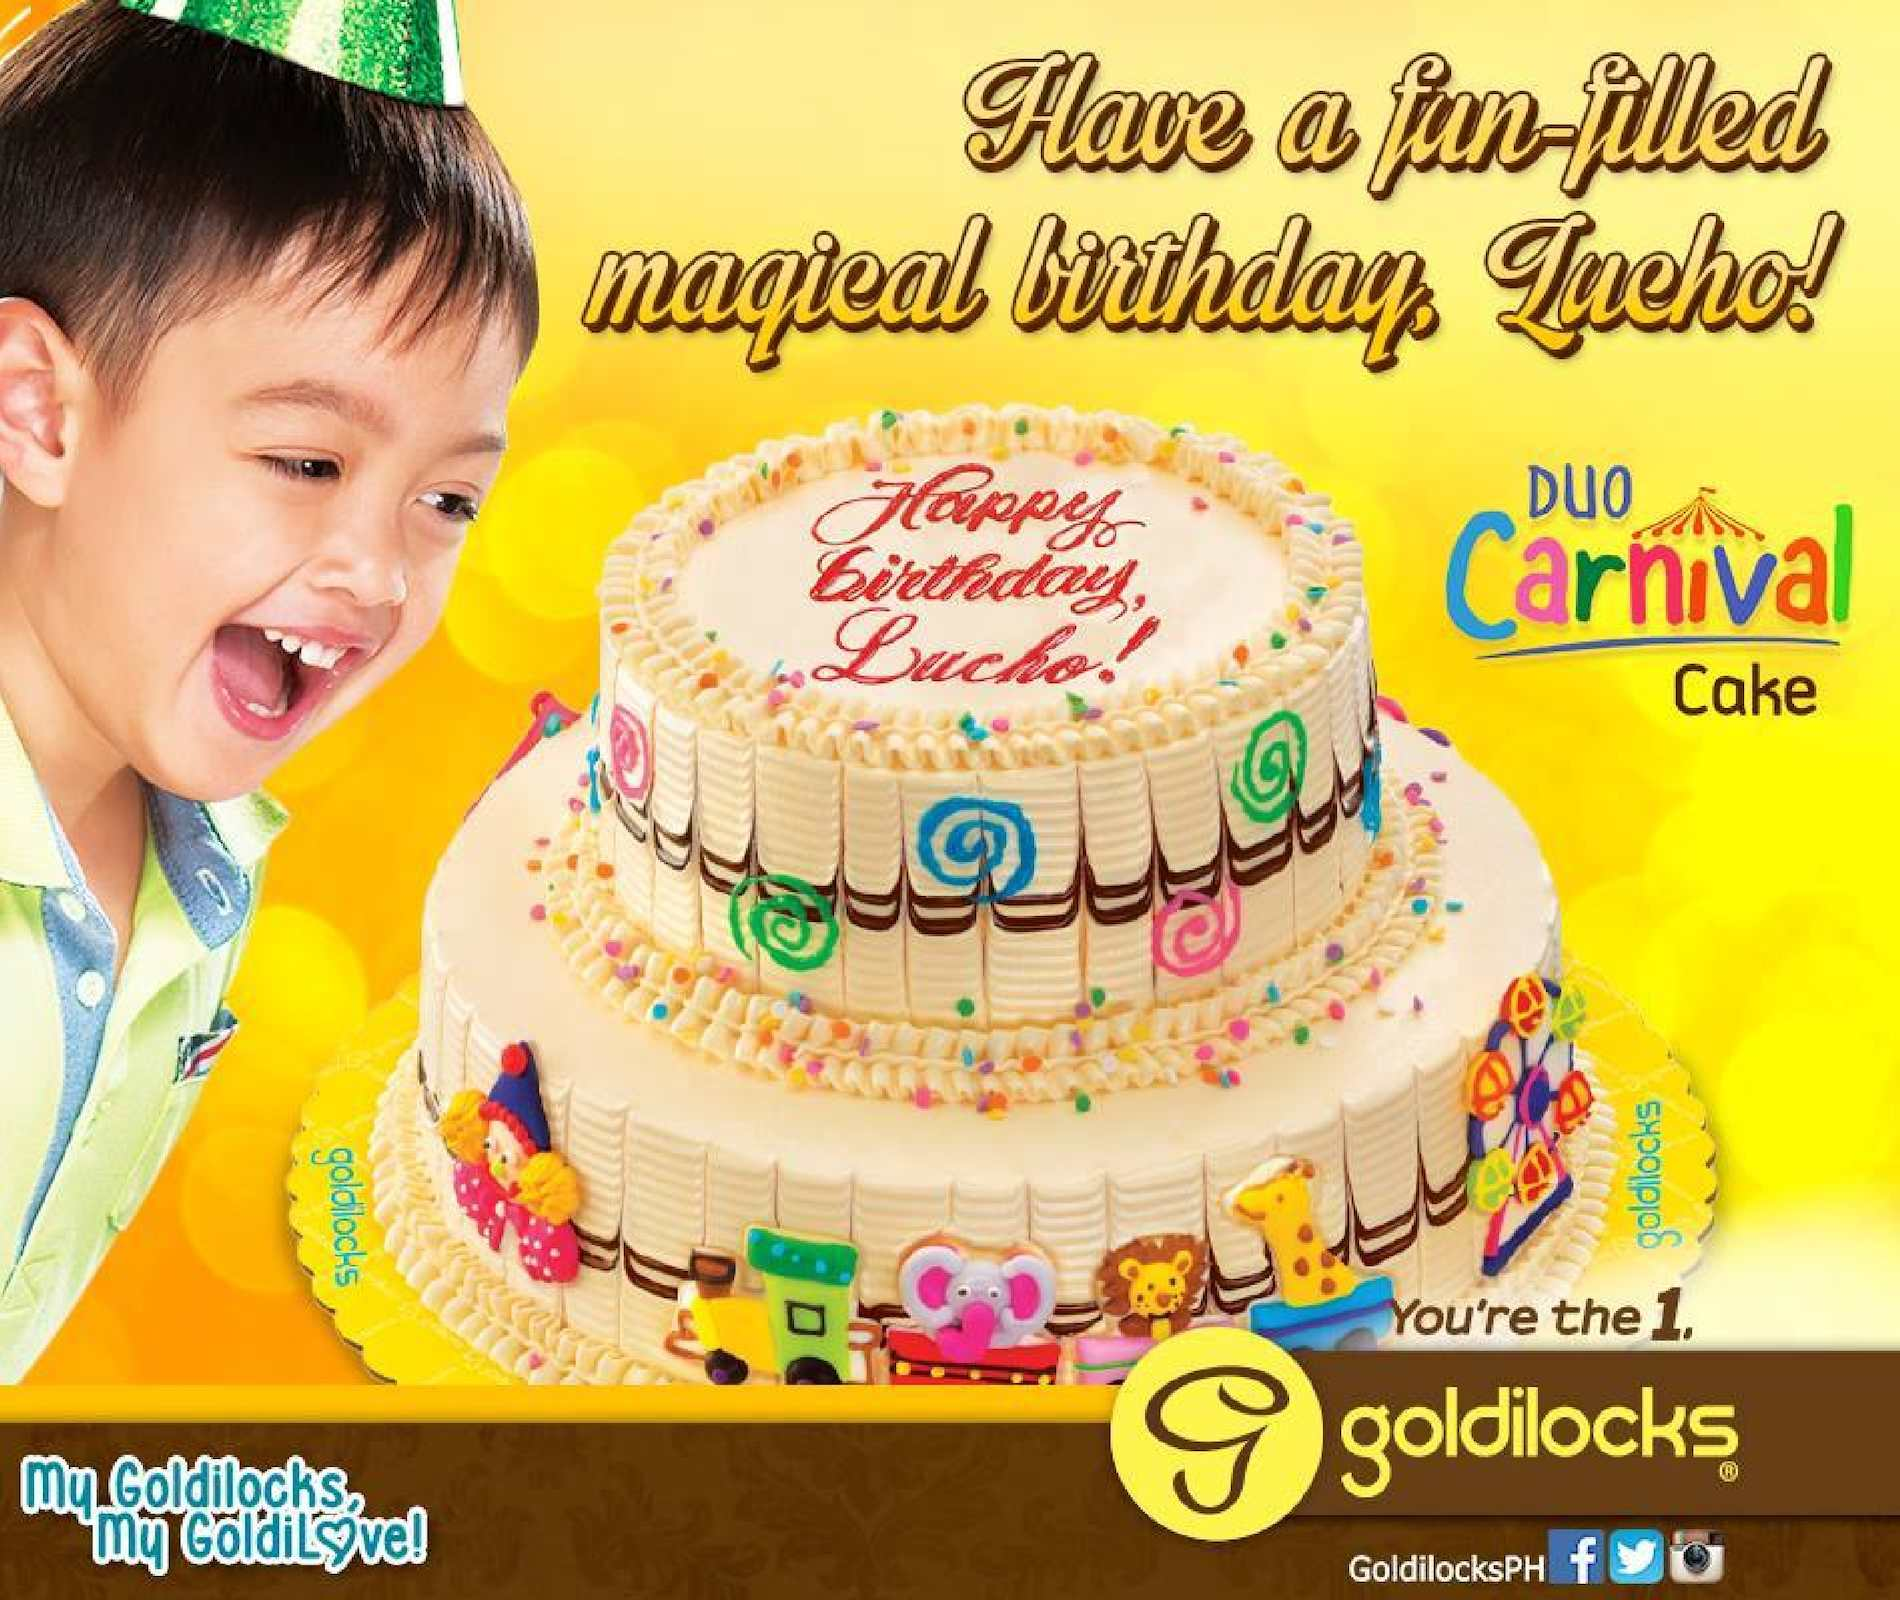 Calameo Duo Carnival Cake For Only P520 At Goldilocks While Stocks